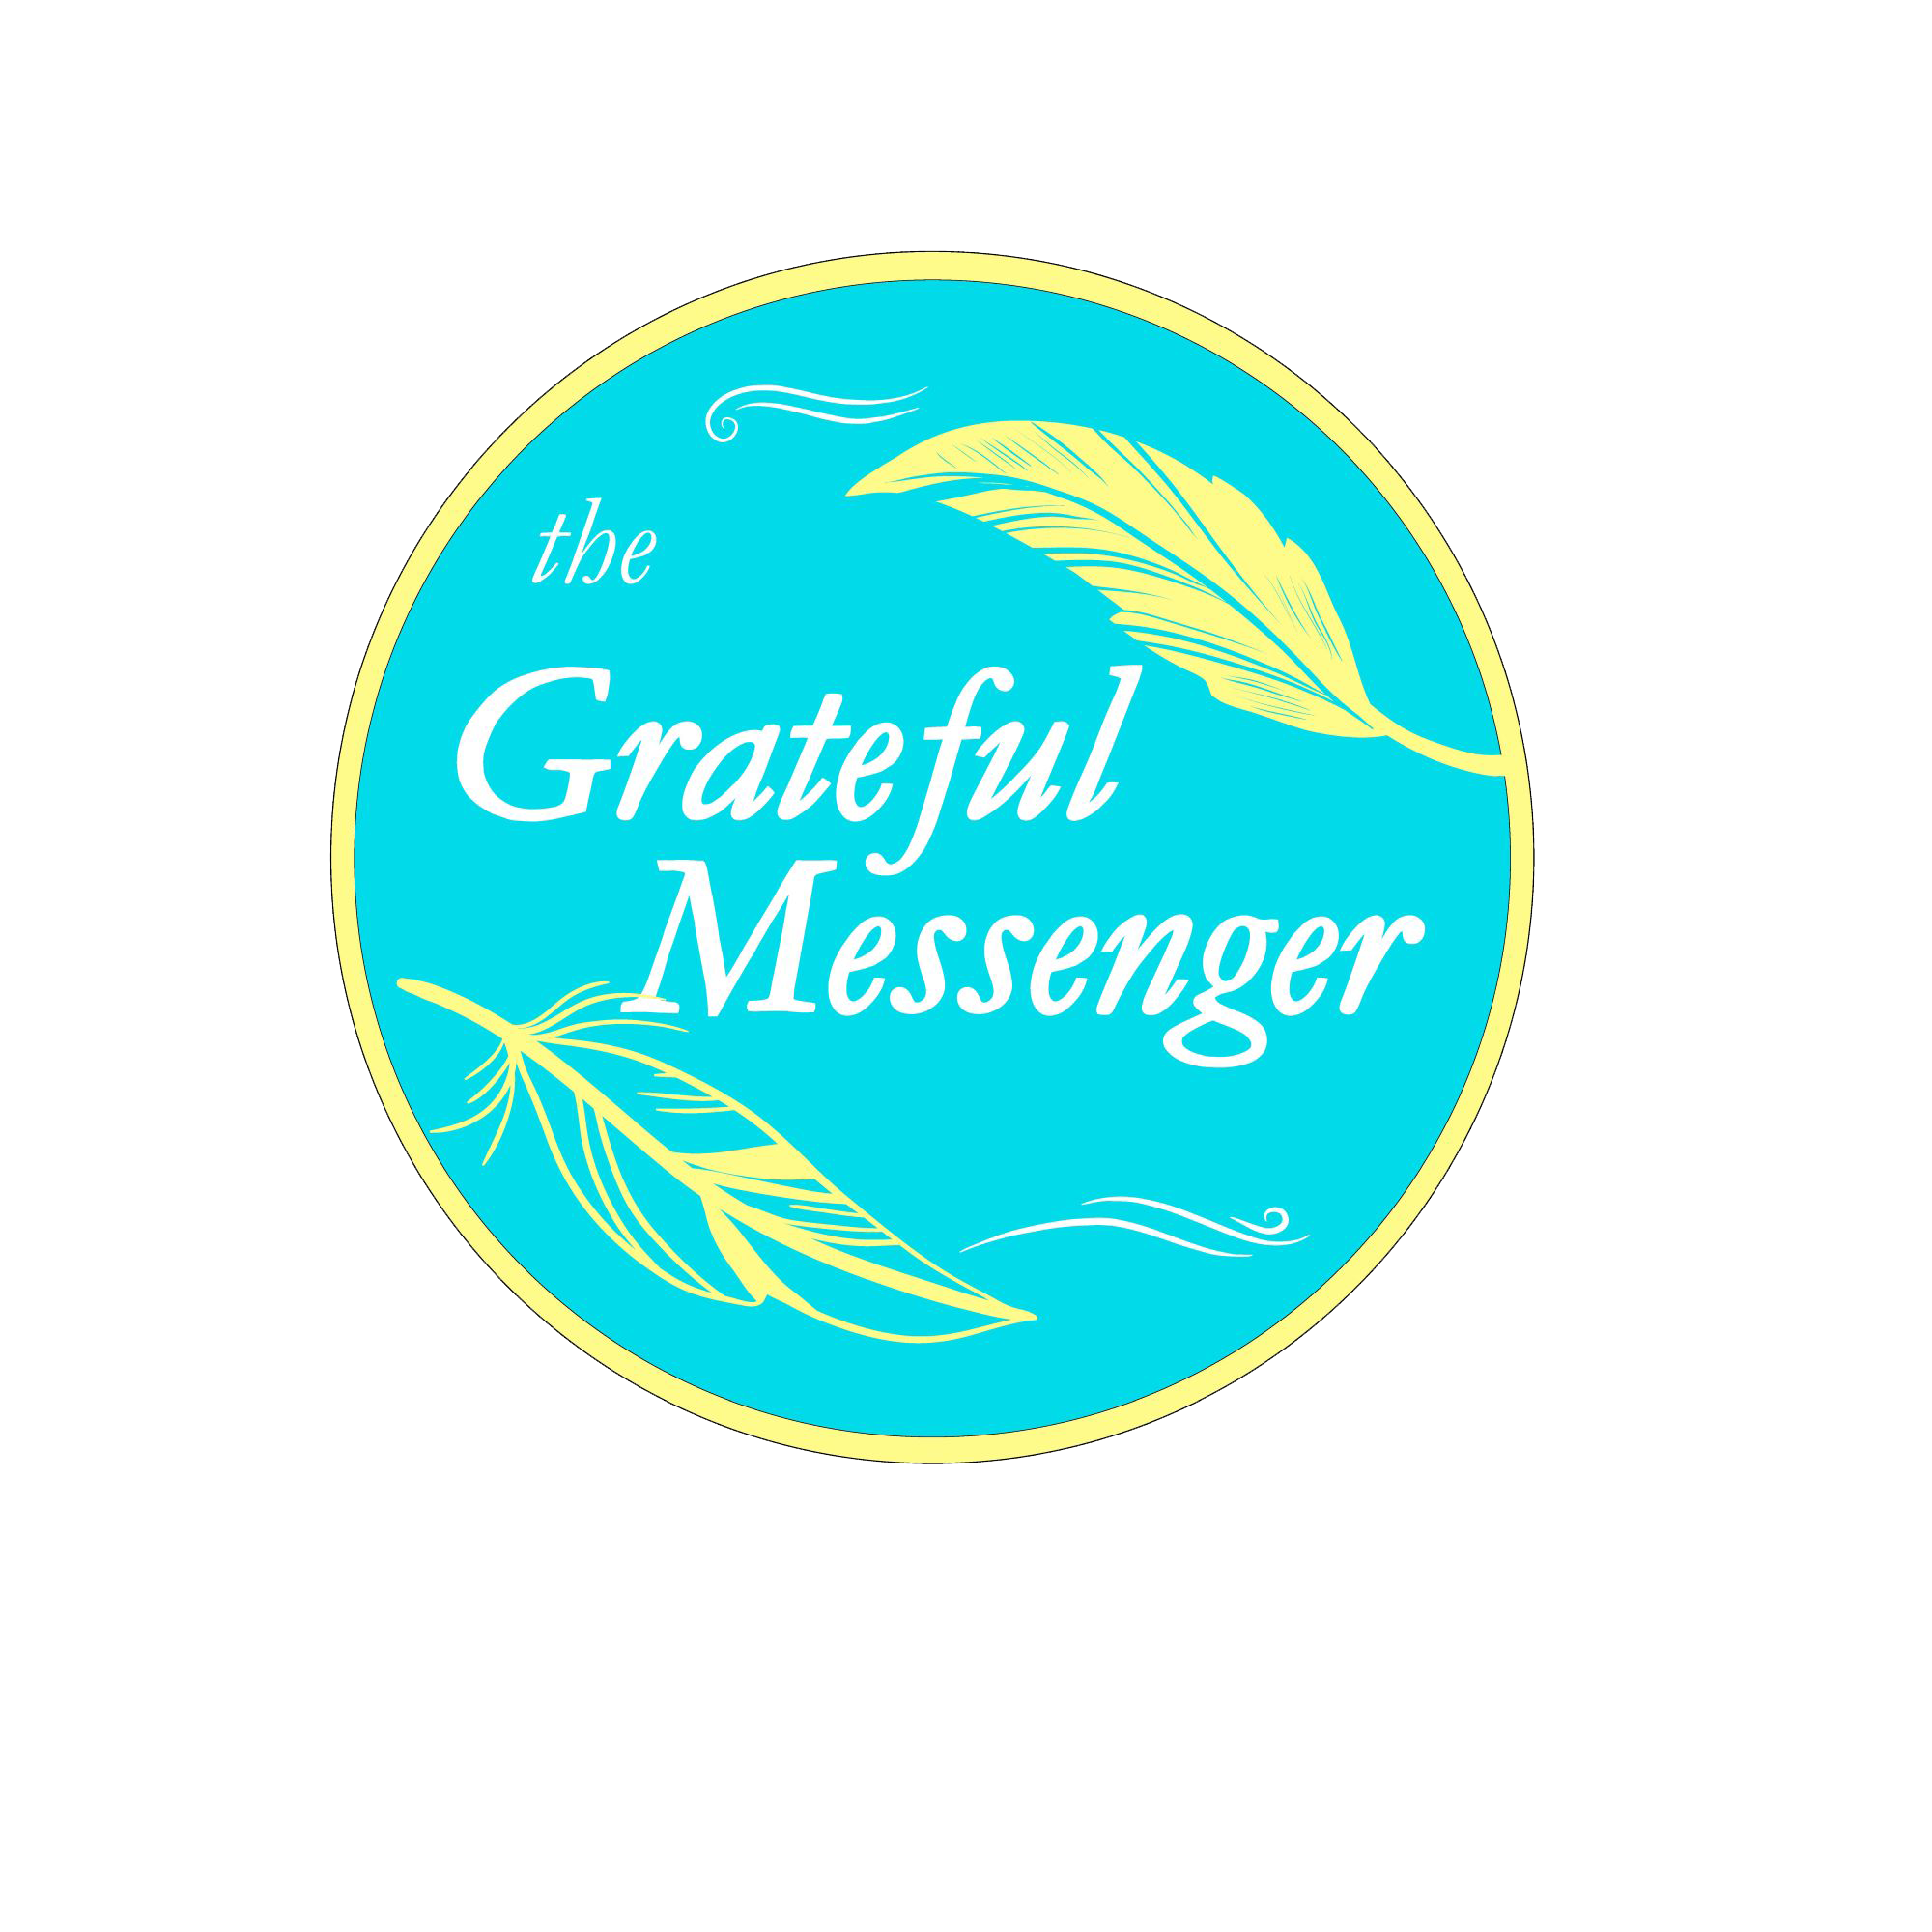 The Grateful Messenger